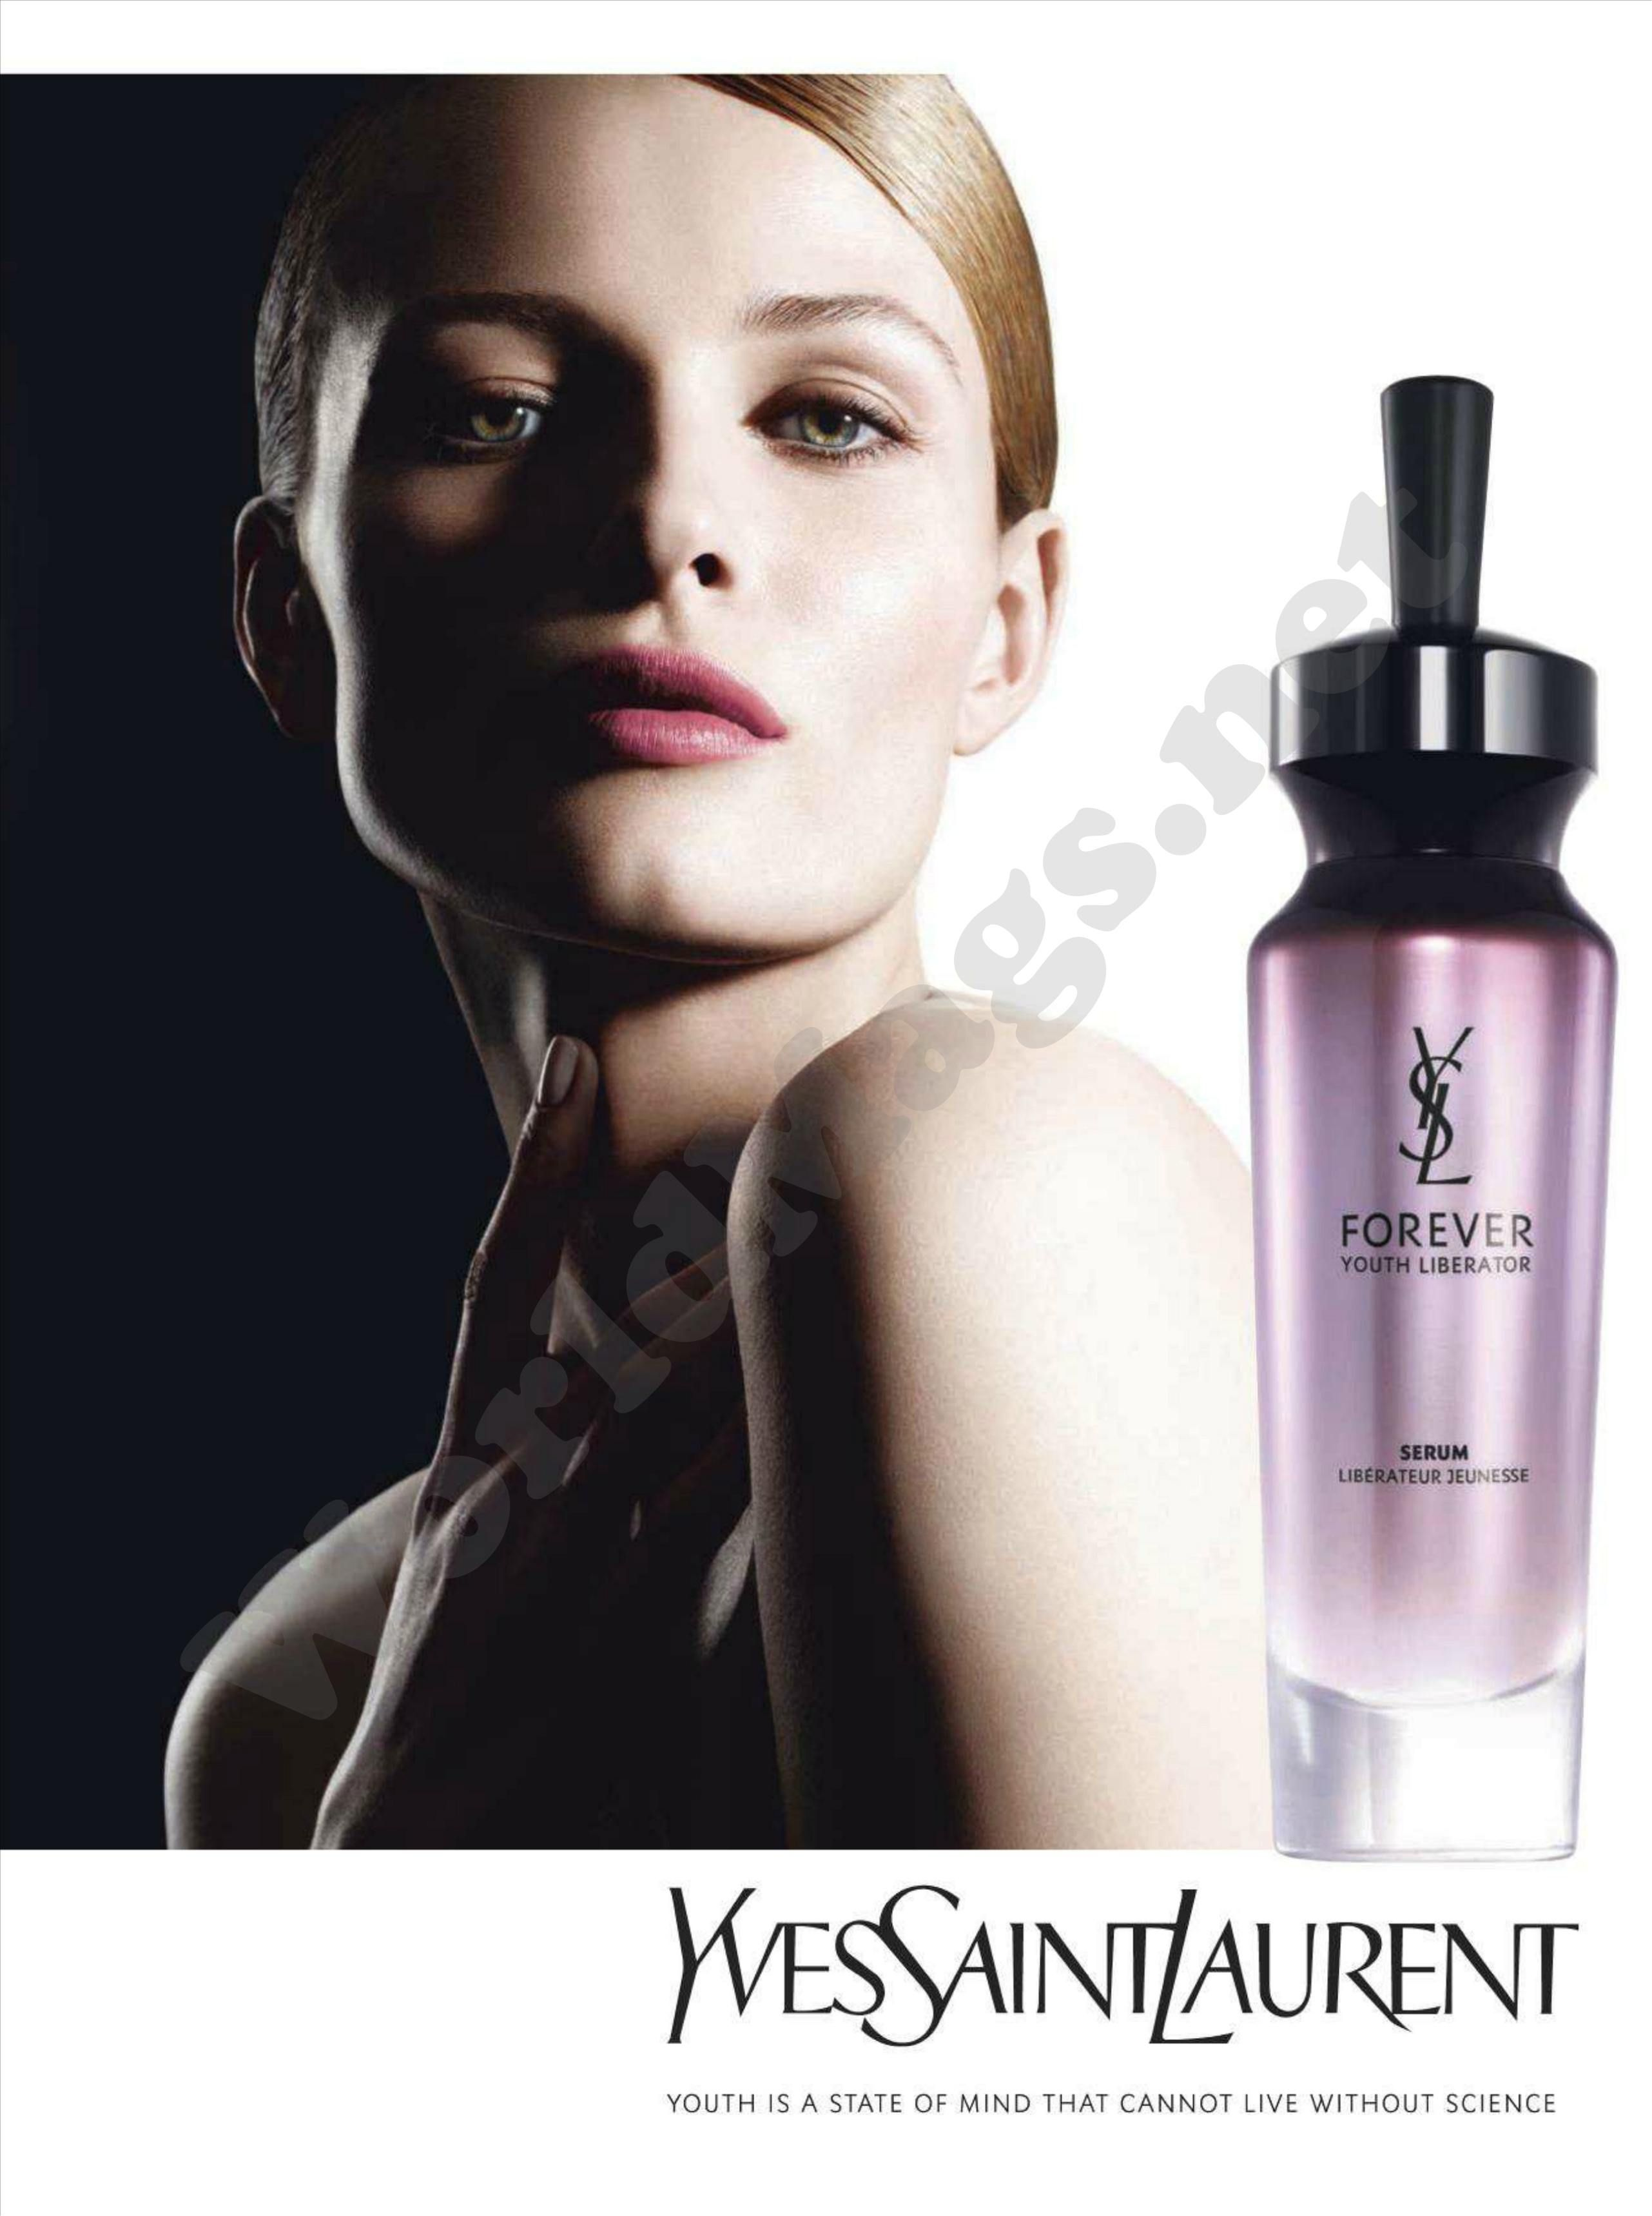 Yves saint laurent forever youth liberator art8amby 39 s blog for Miroir yves saint laurent